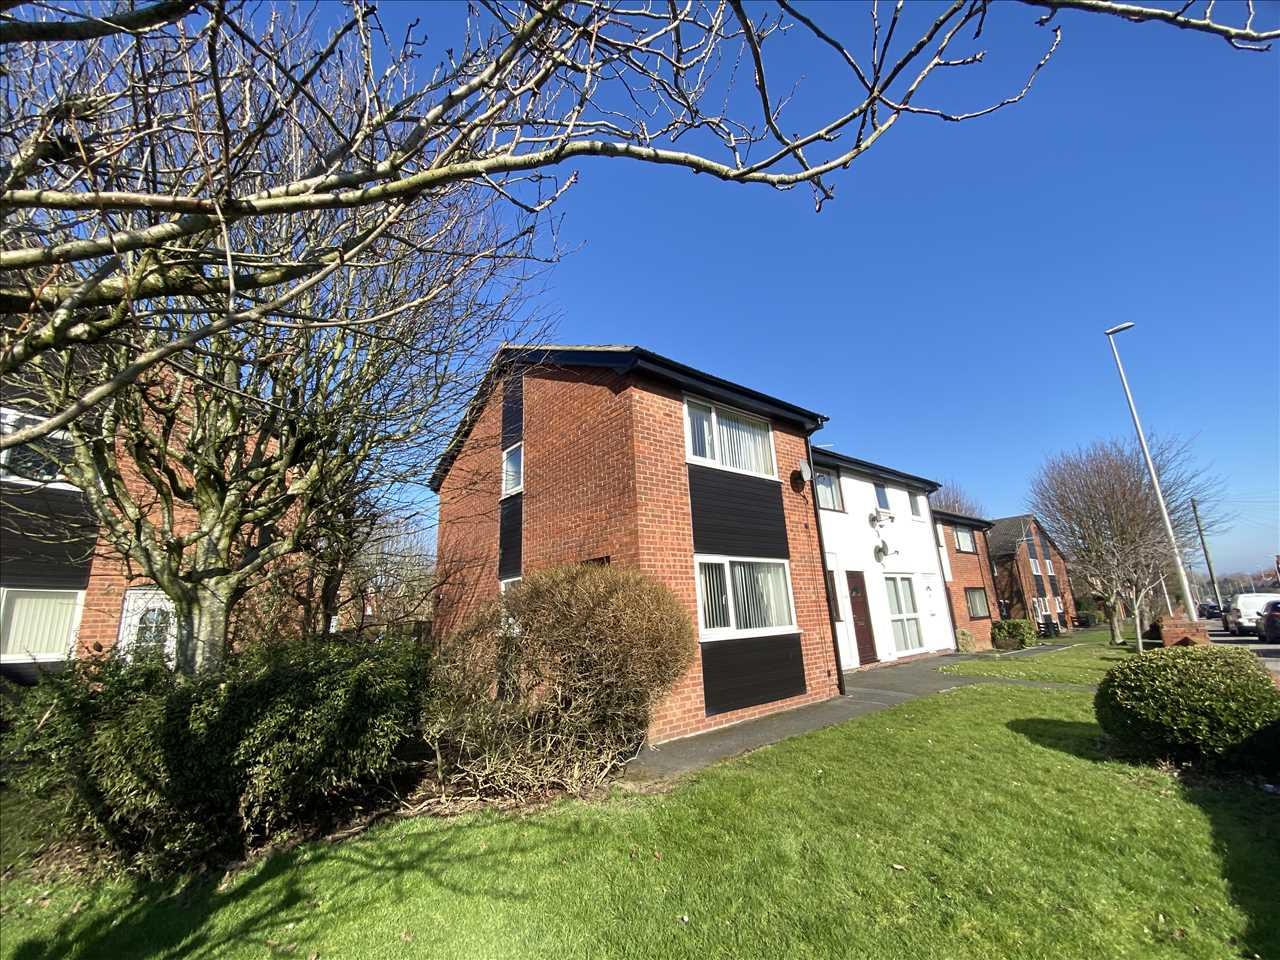 2 bed terraced for sale in Condor Grove, Blackpool, FY1